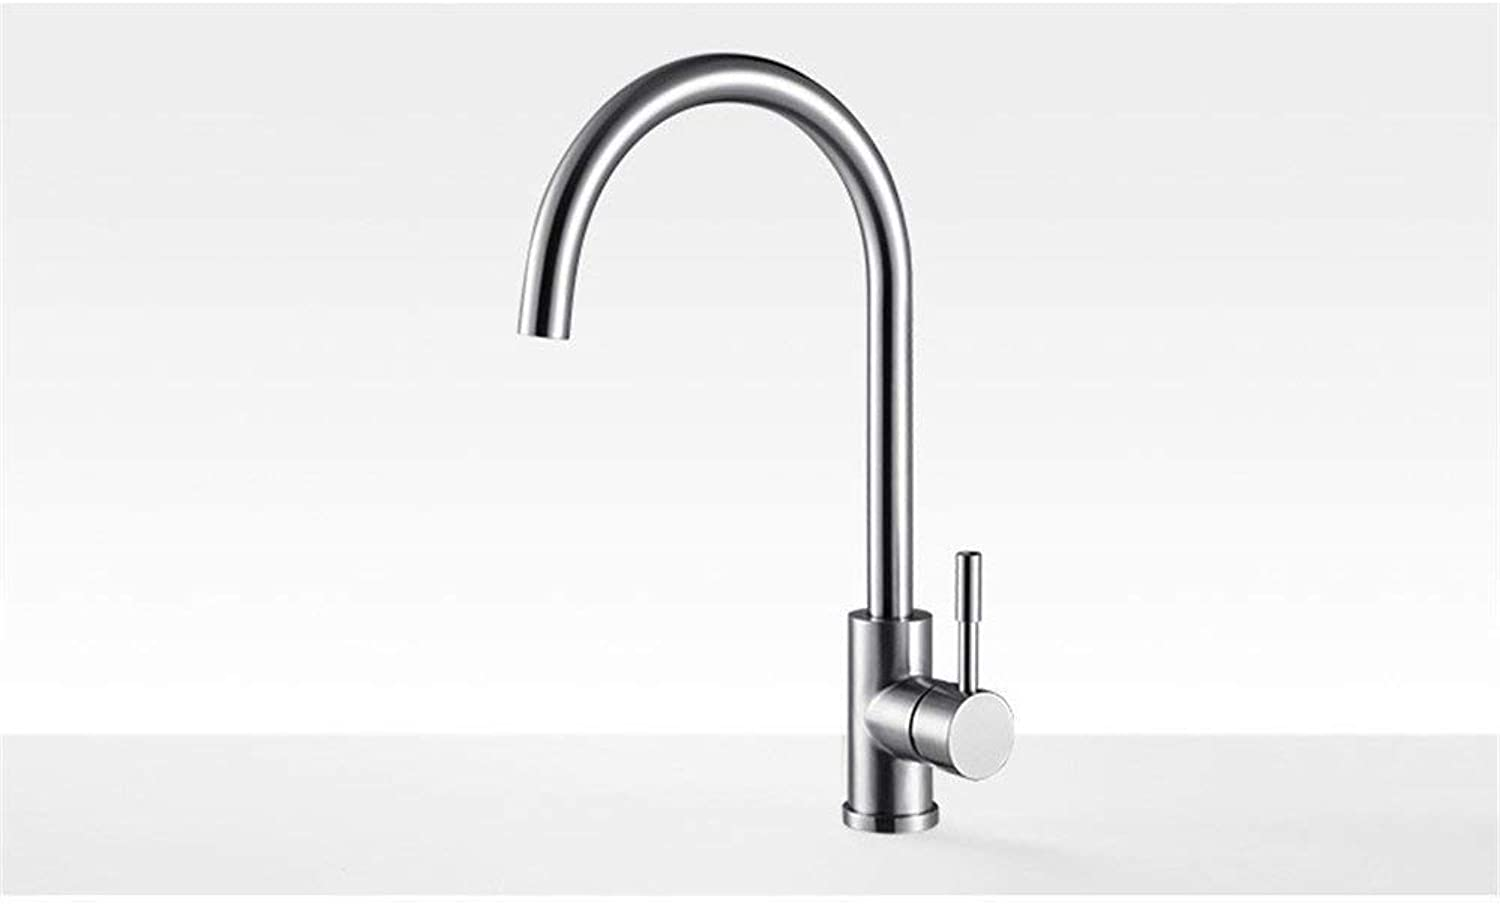 Vegetables Basin Kitchen Faucet Hot And Cold Copper Sink Faucet Single Full redation Of 304 Stainless Steel Cold Kitchen Faucet Ceramic Valve Core, Stainless Steel Elbow Hose [60] Containing 2